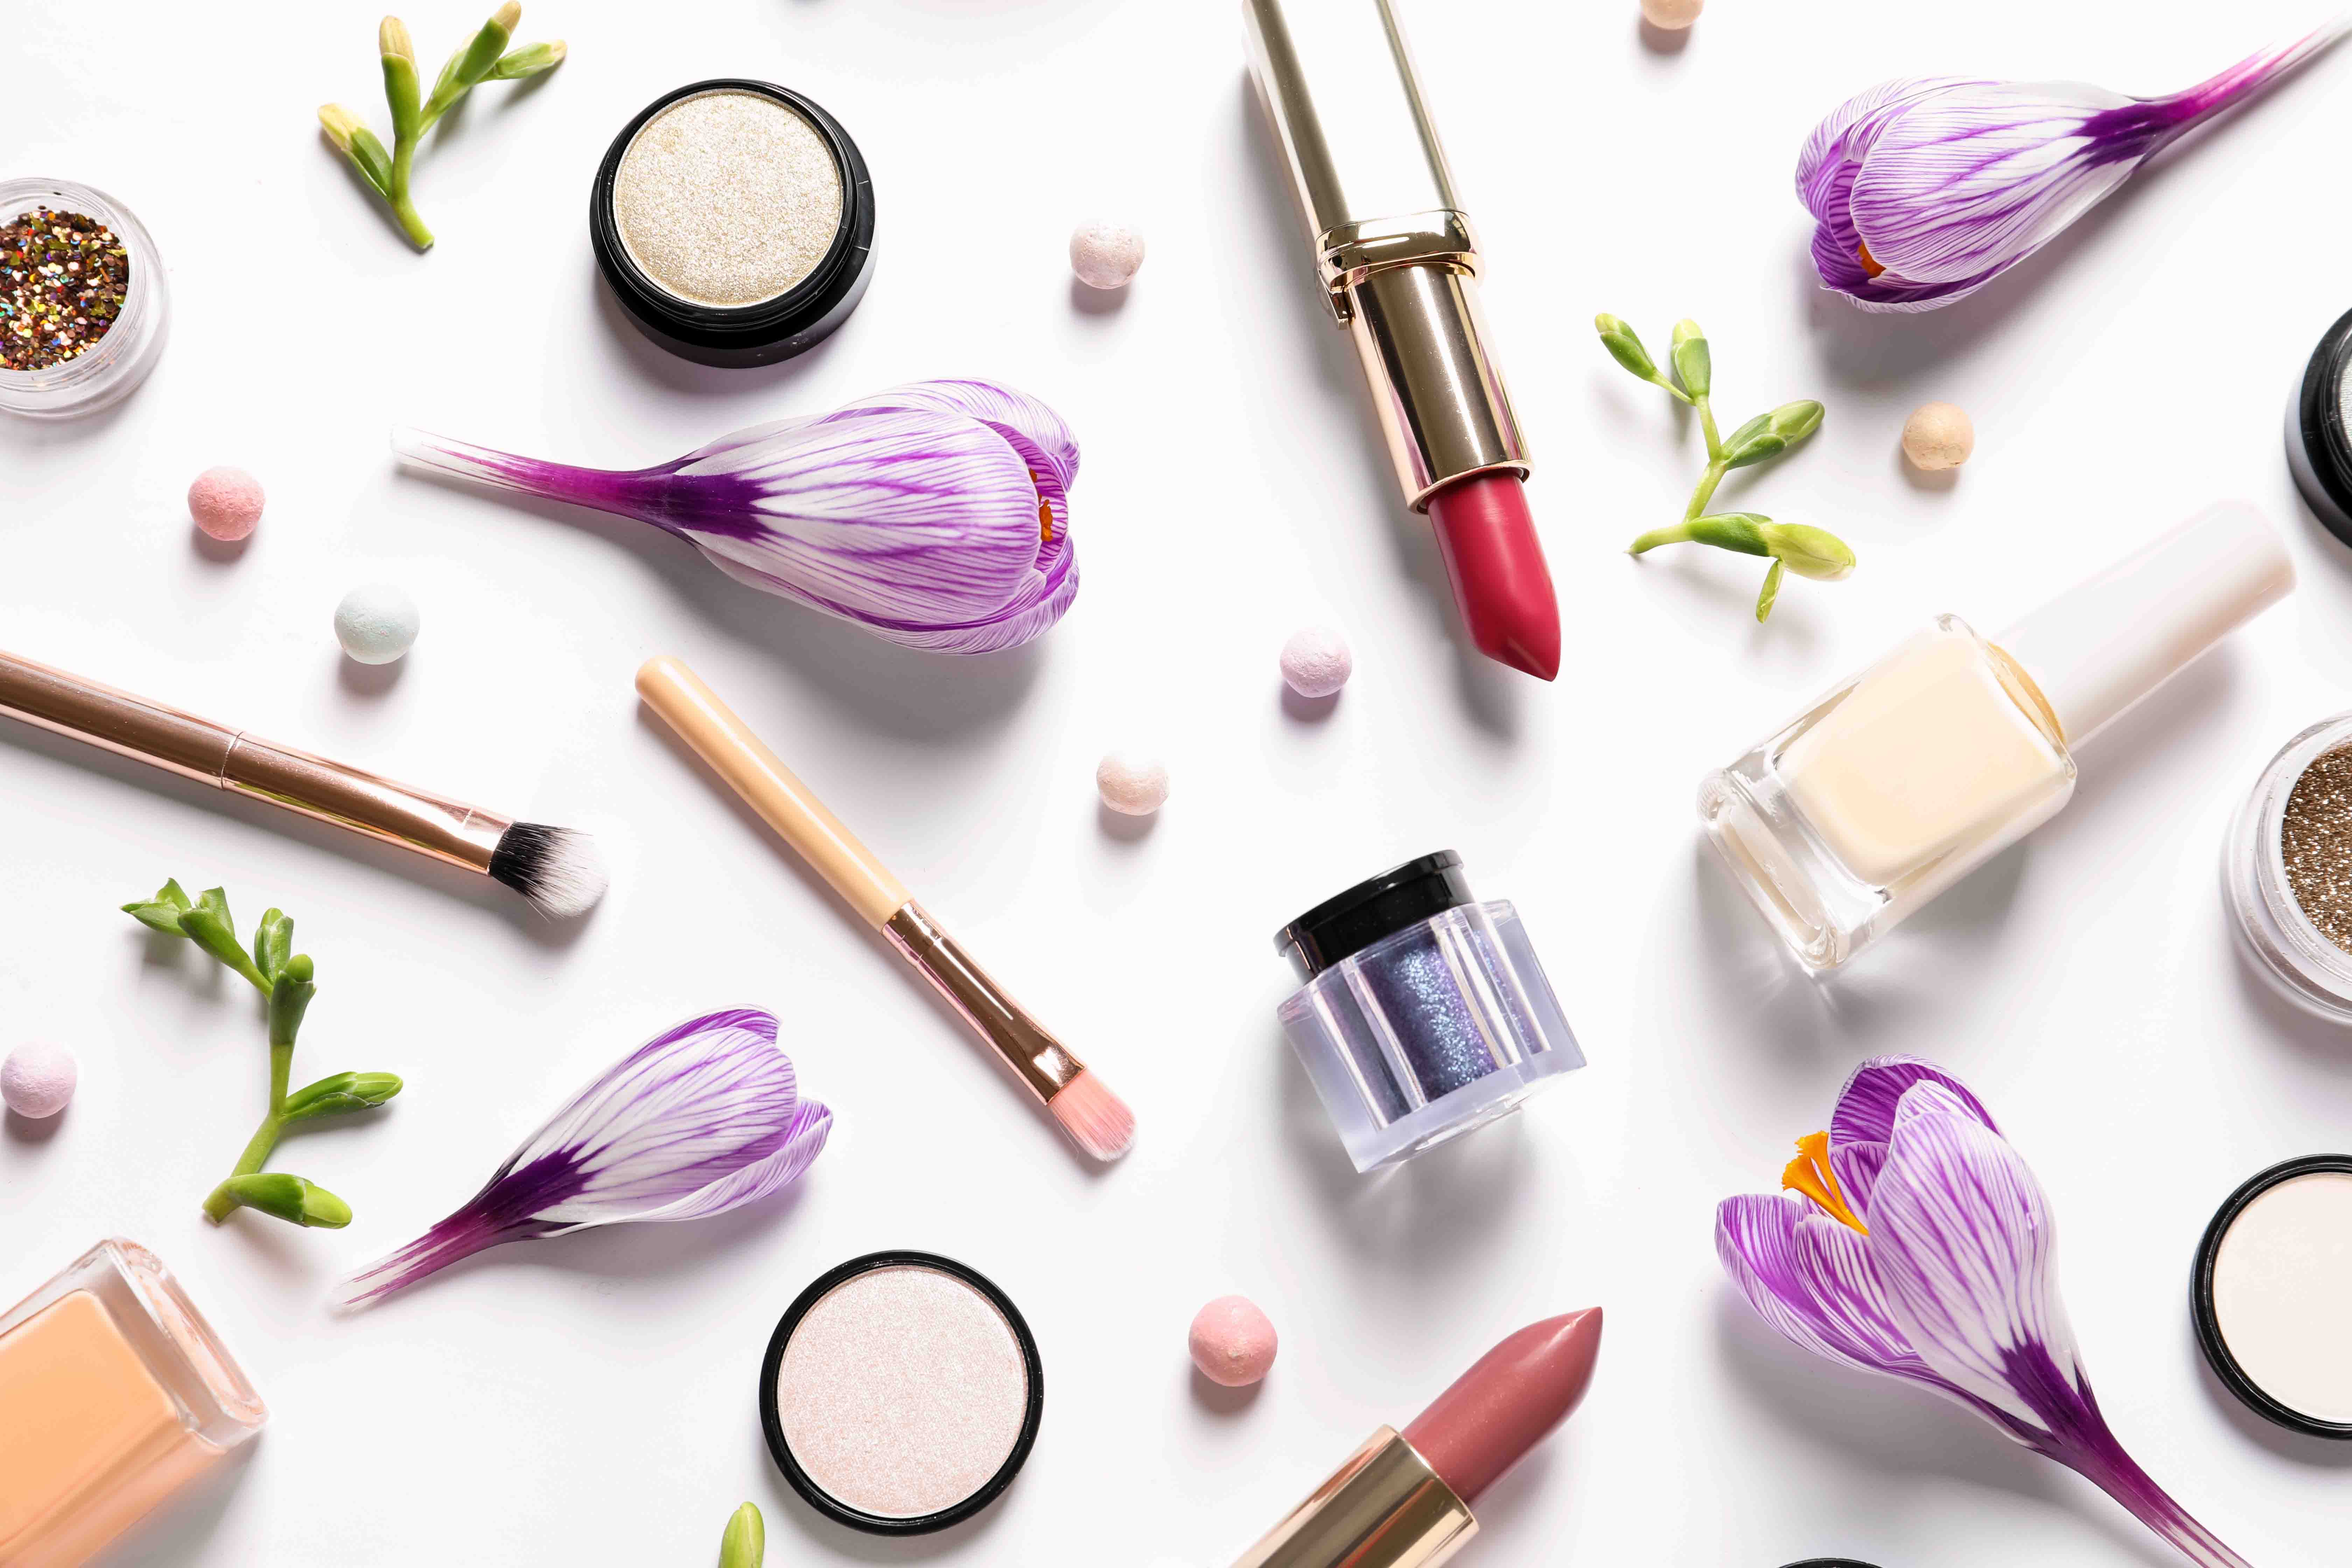 can cosmetics be patented?